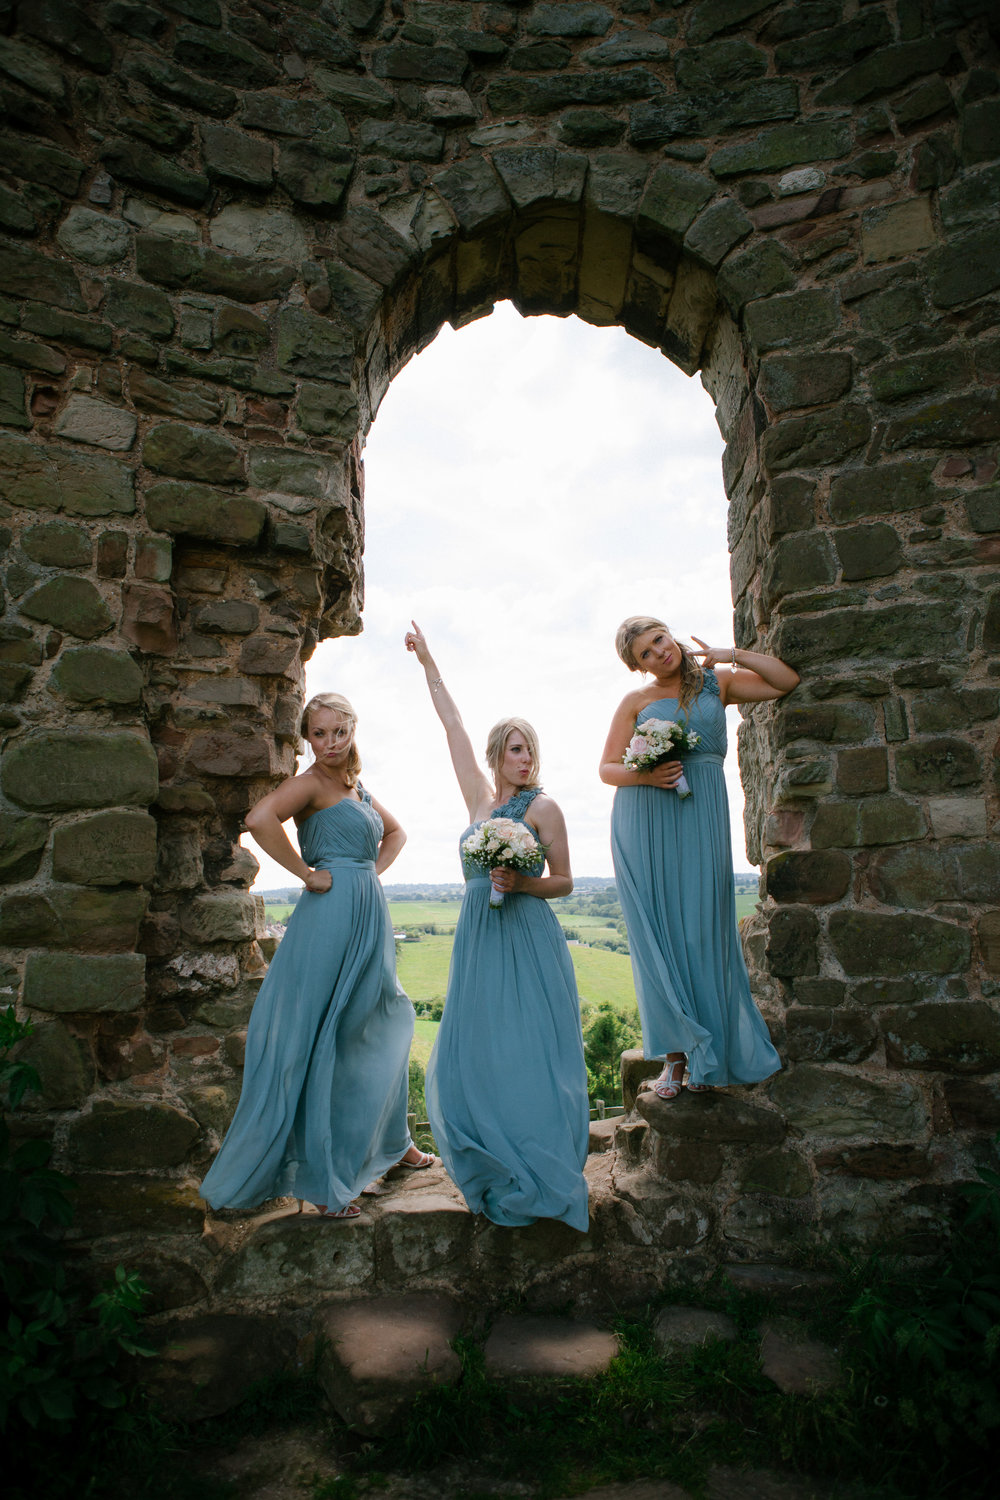 Somerset Wedding Photographer Tutbury Castle Ollie & Katy 364.jpg